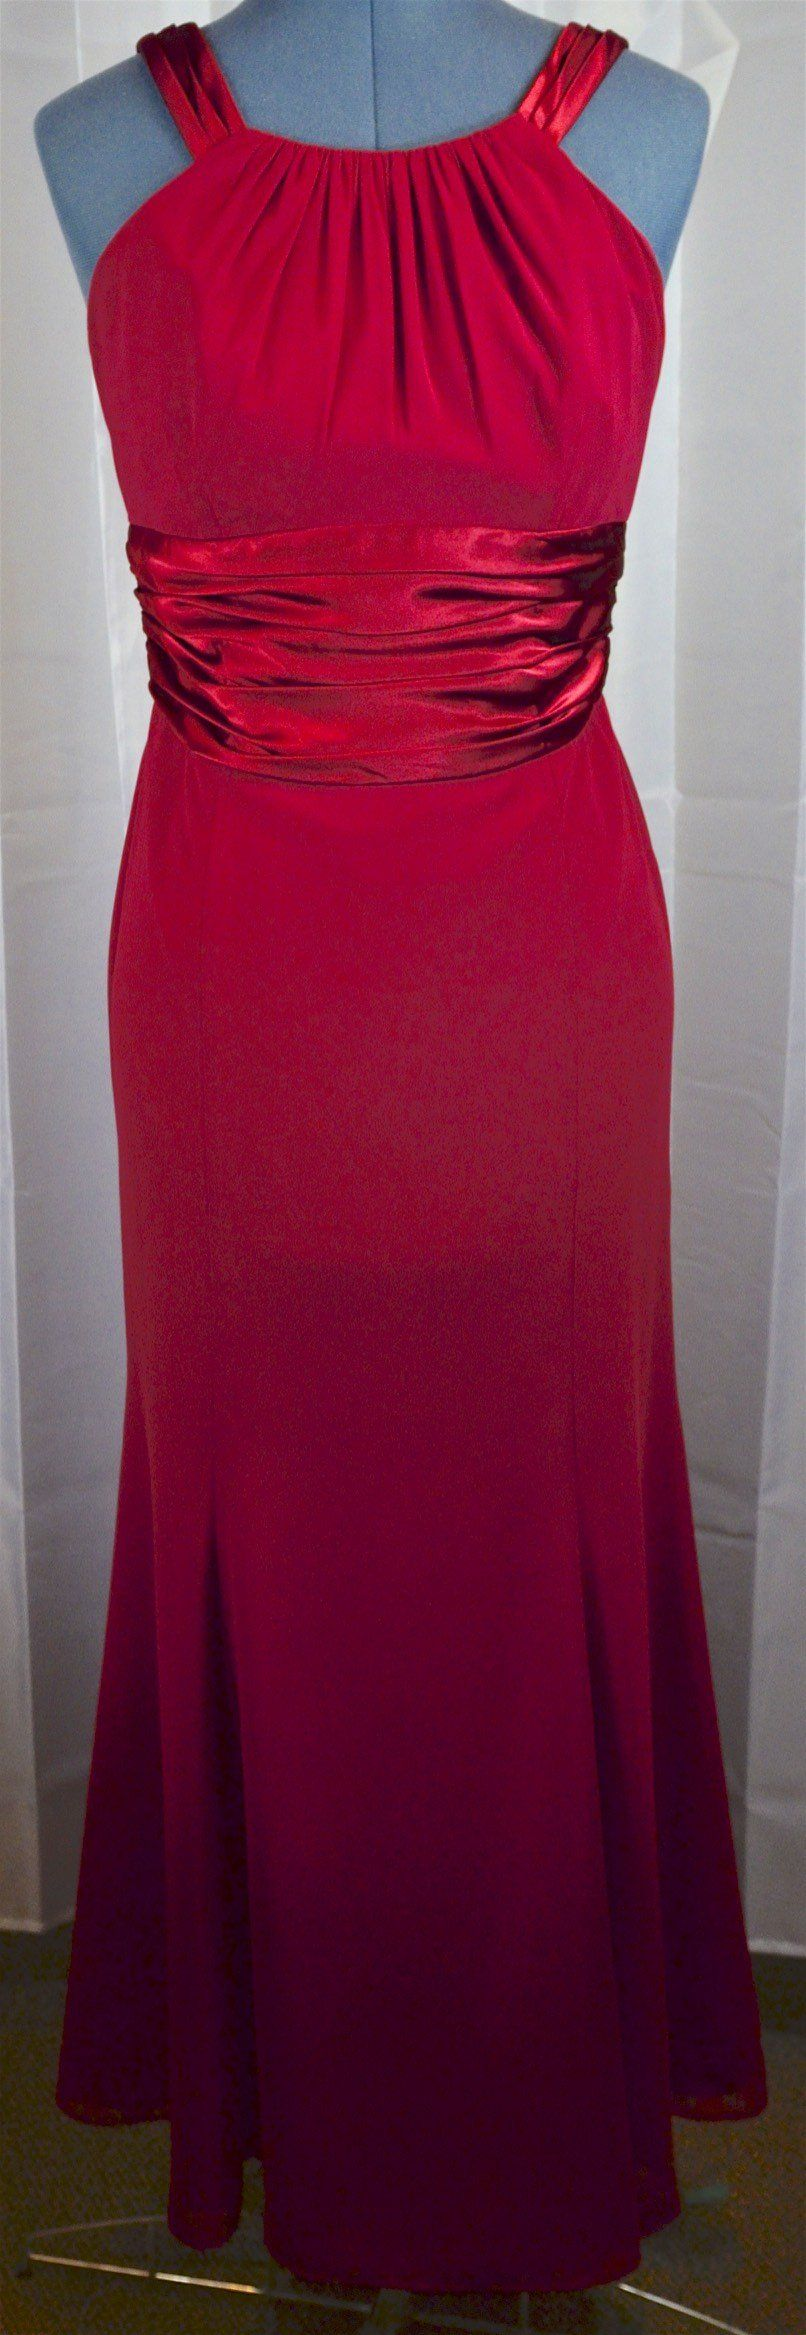 Davids Bridal Red formal gown | Red formal gown, Formal gowns and Formal